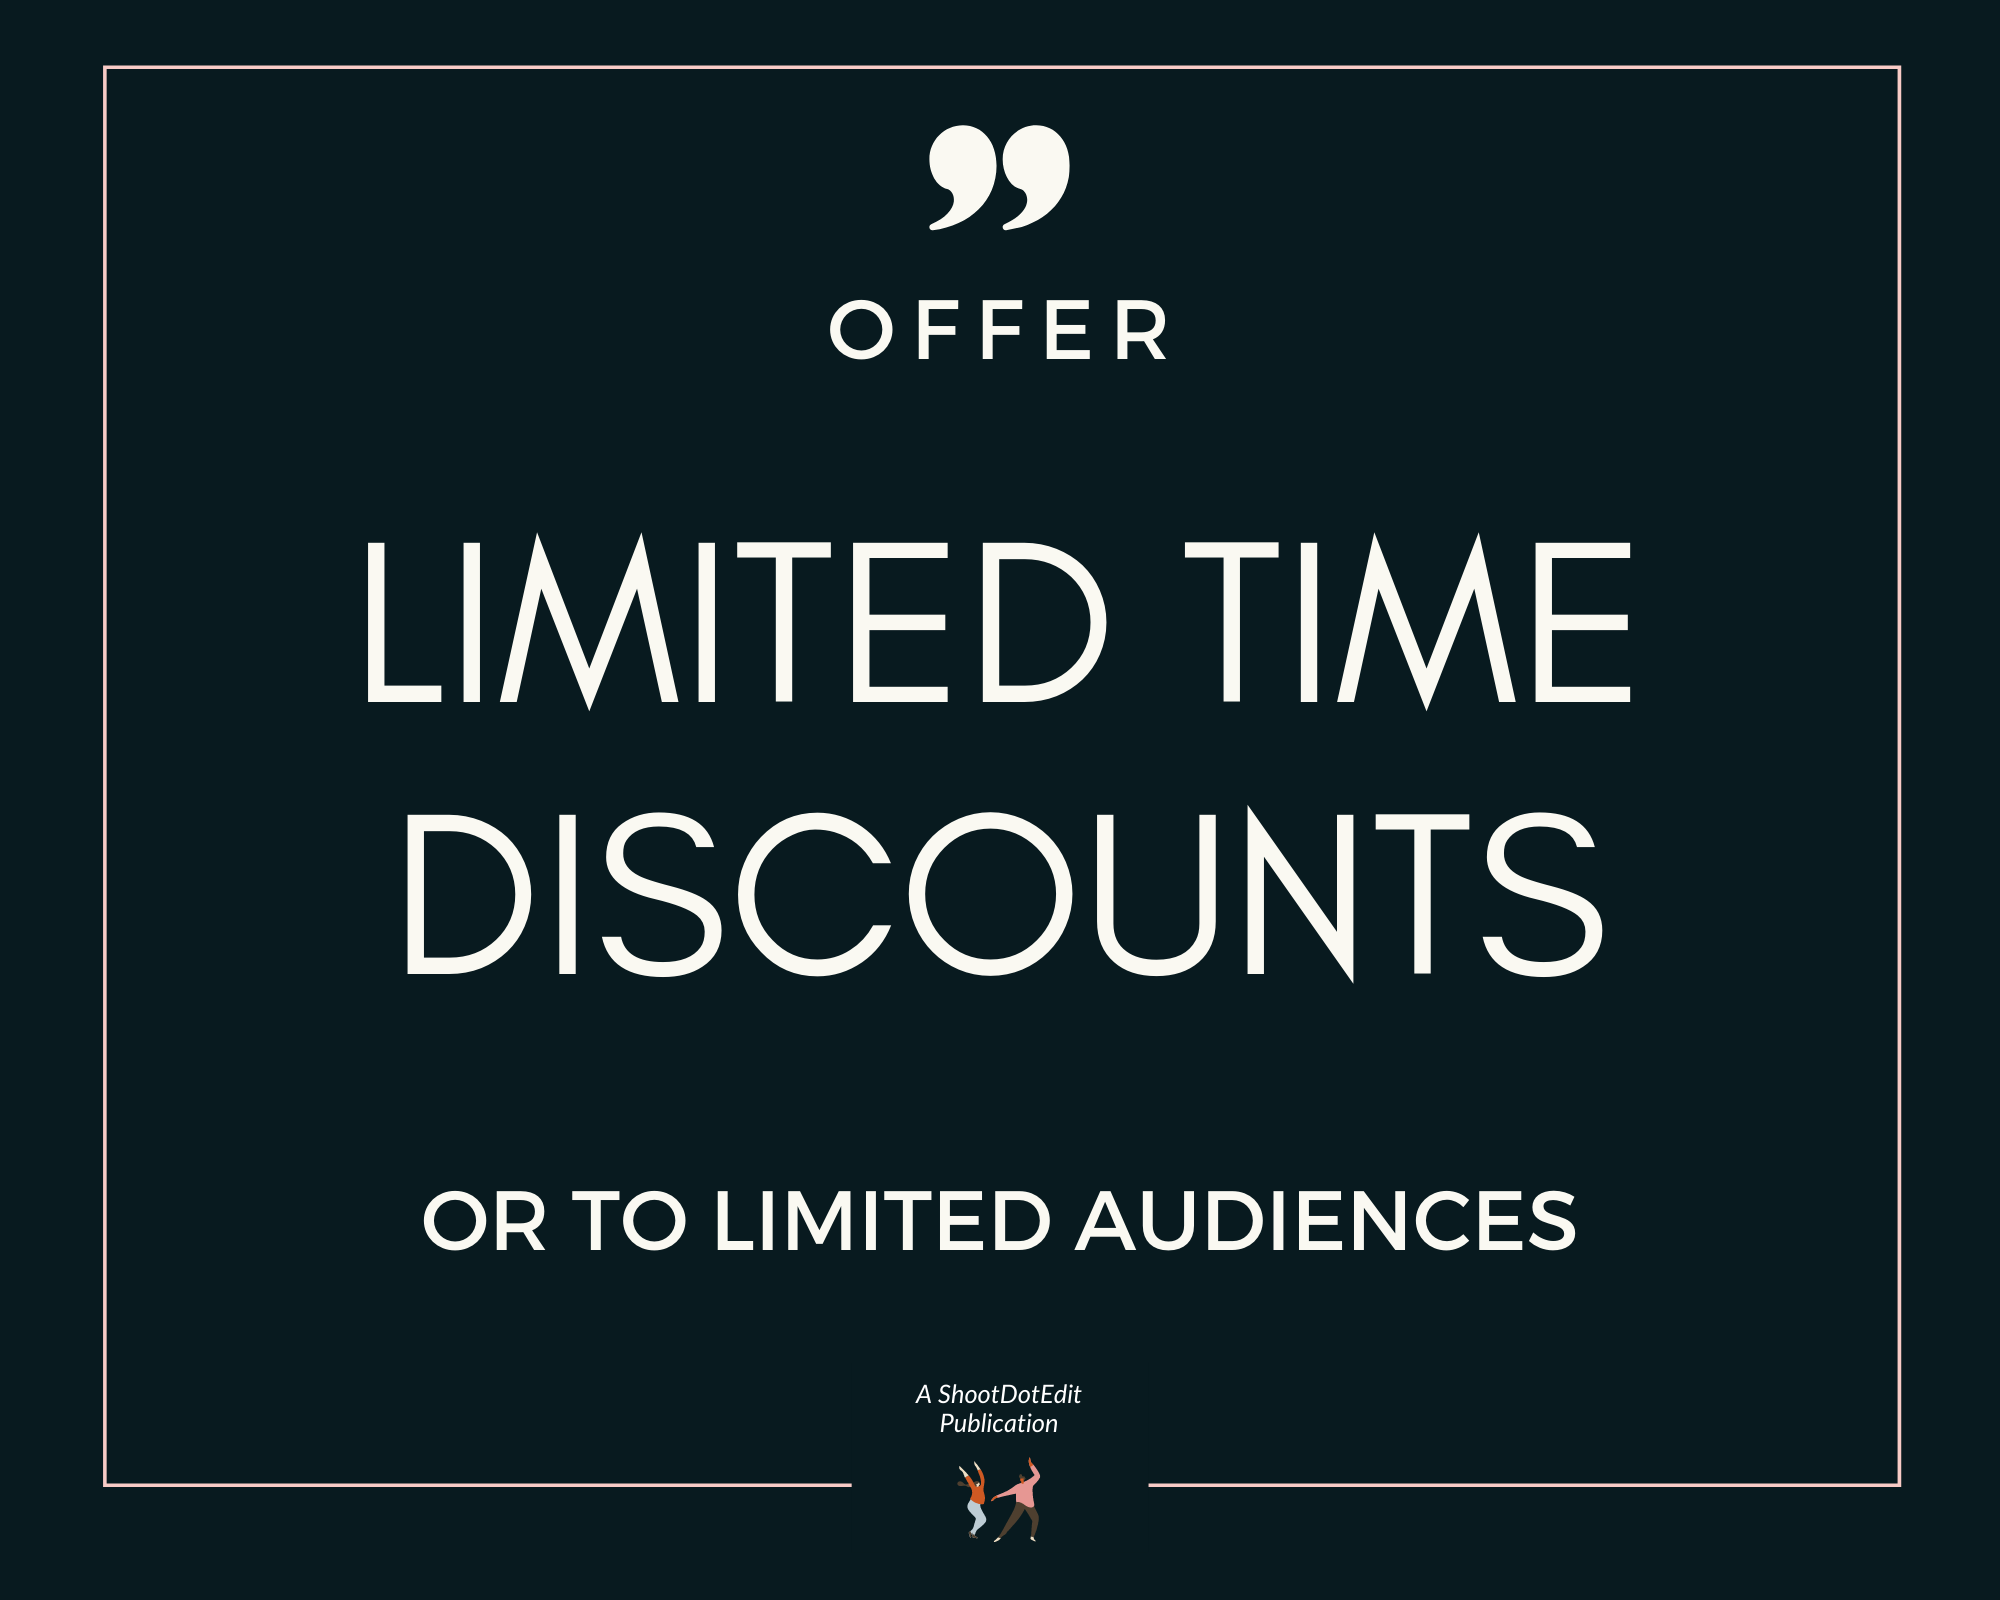 Infographic - Offer limited time discounts or to limited audiences